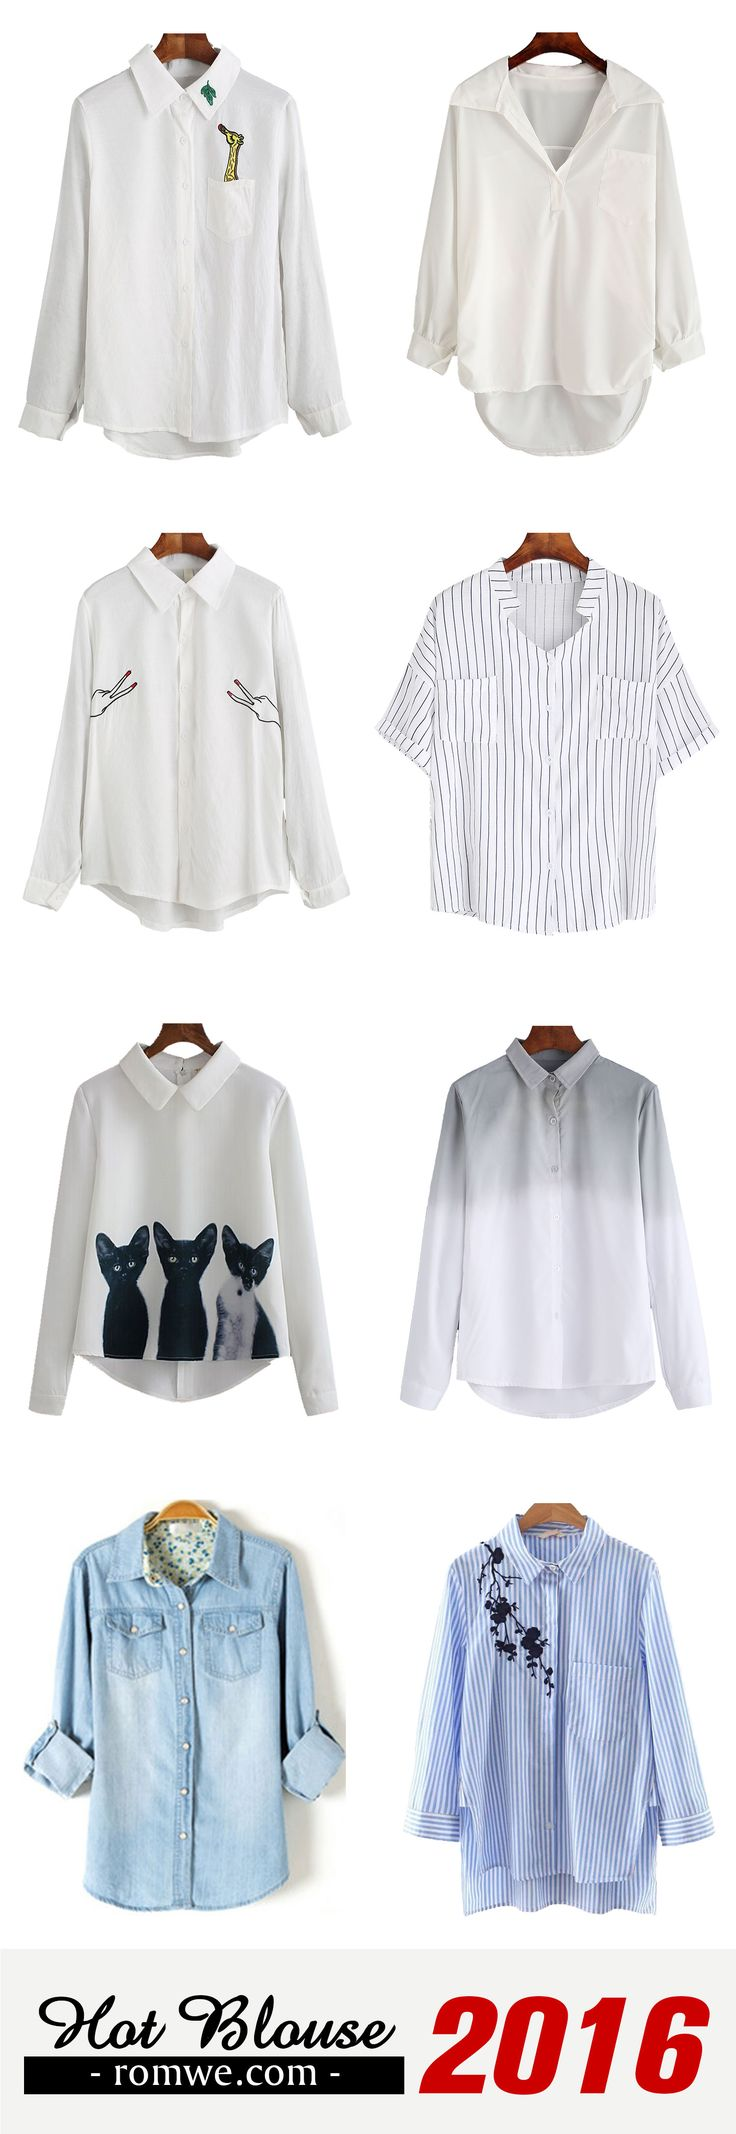 Equipment Blouse Outfit 2016 - Romwe.com